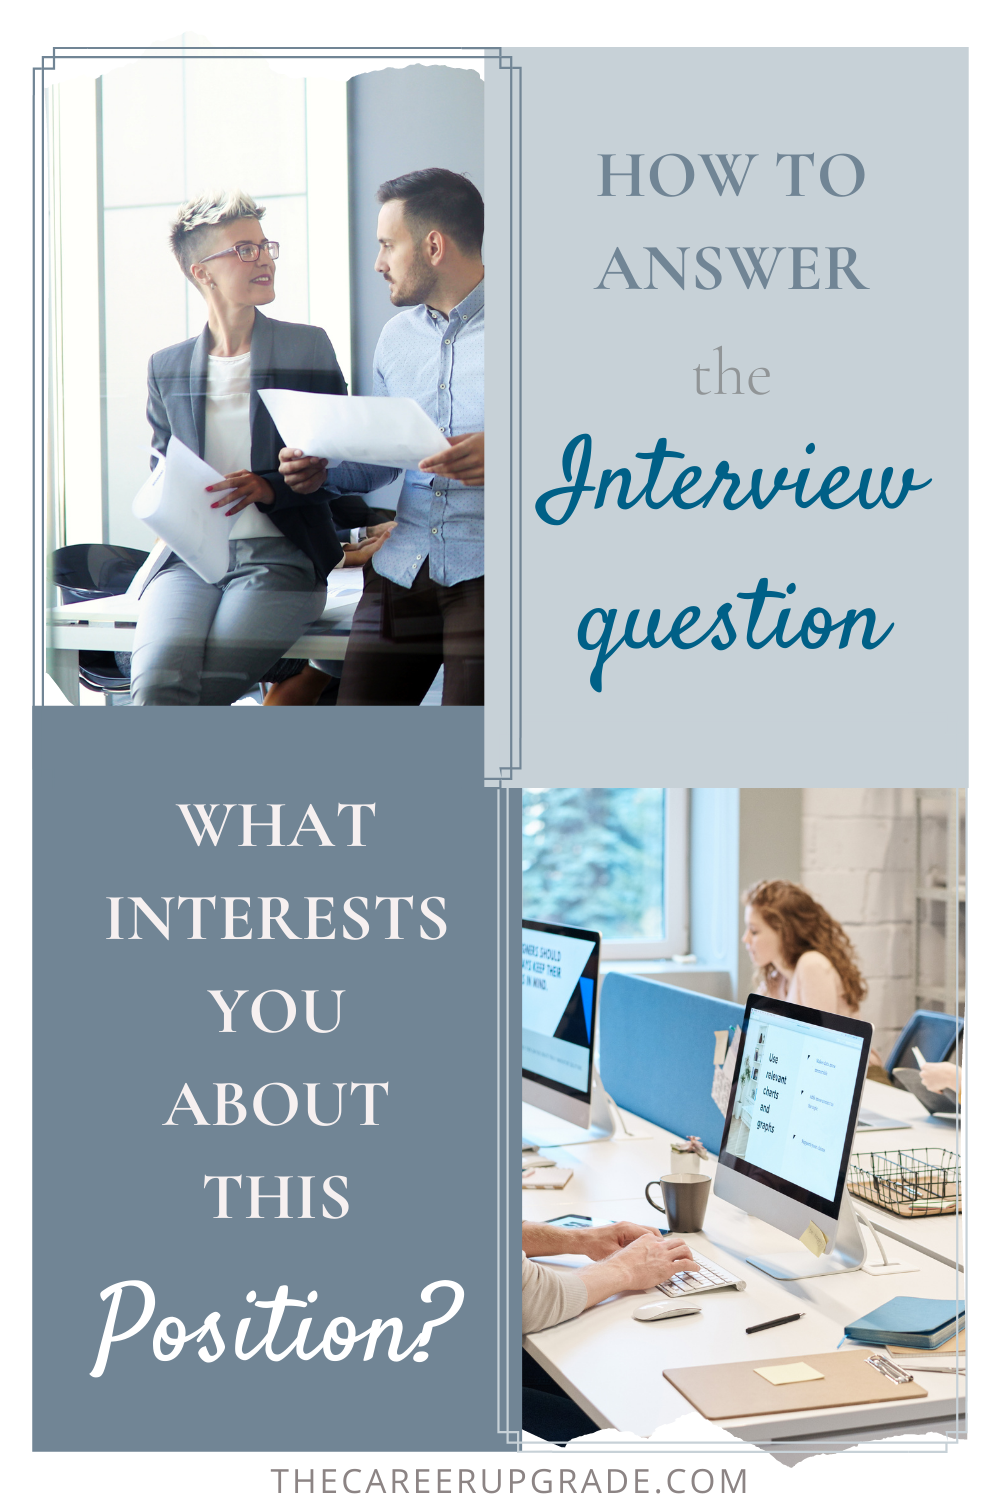 image with text overlay how to answer the question what interest you about this position?